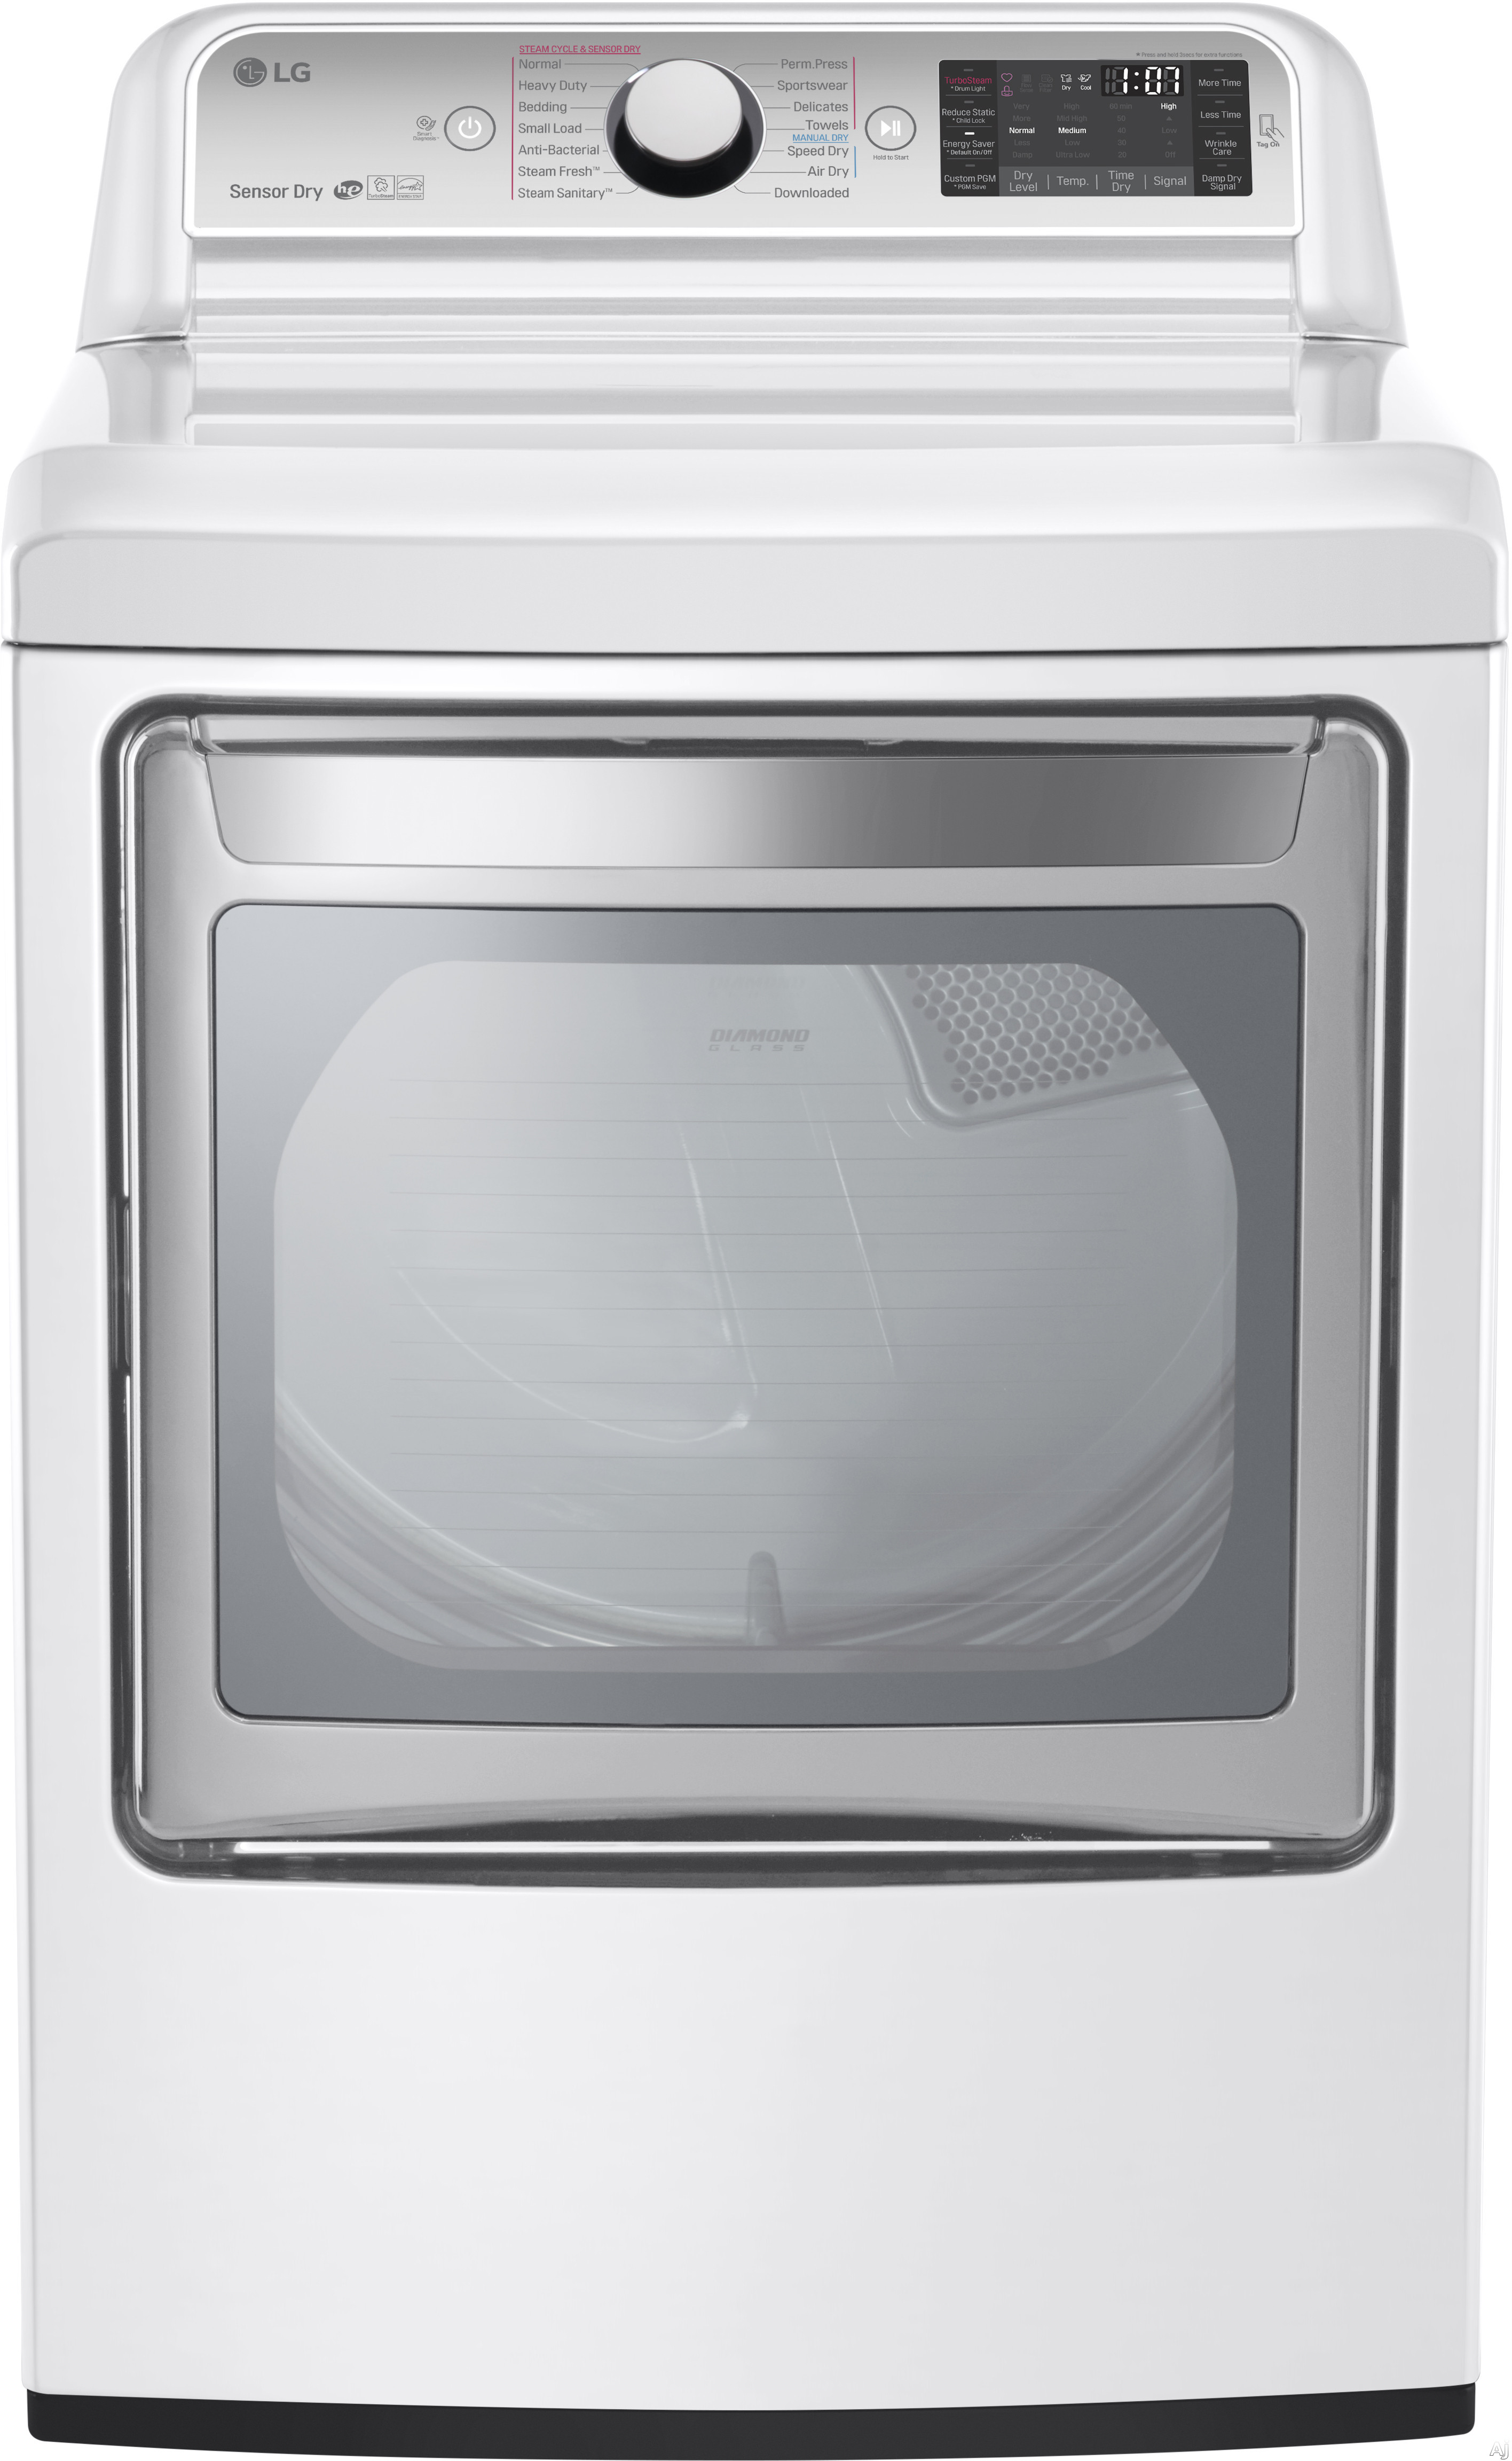 LG DLGX7601WE 27 Inch 7.3 cu. ft. Gas Dryer with 14 Dry Programs TurboSteam EasyLoad Door Smart ThinQ Technology ReduceStatic Option NeveRust Stainless Steel Drum and ENERGY STAR Qualified White